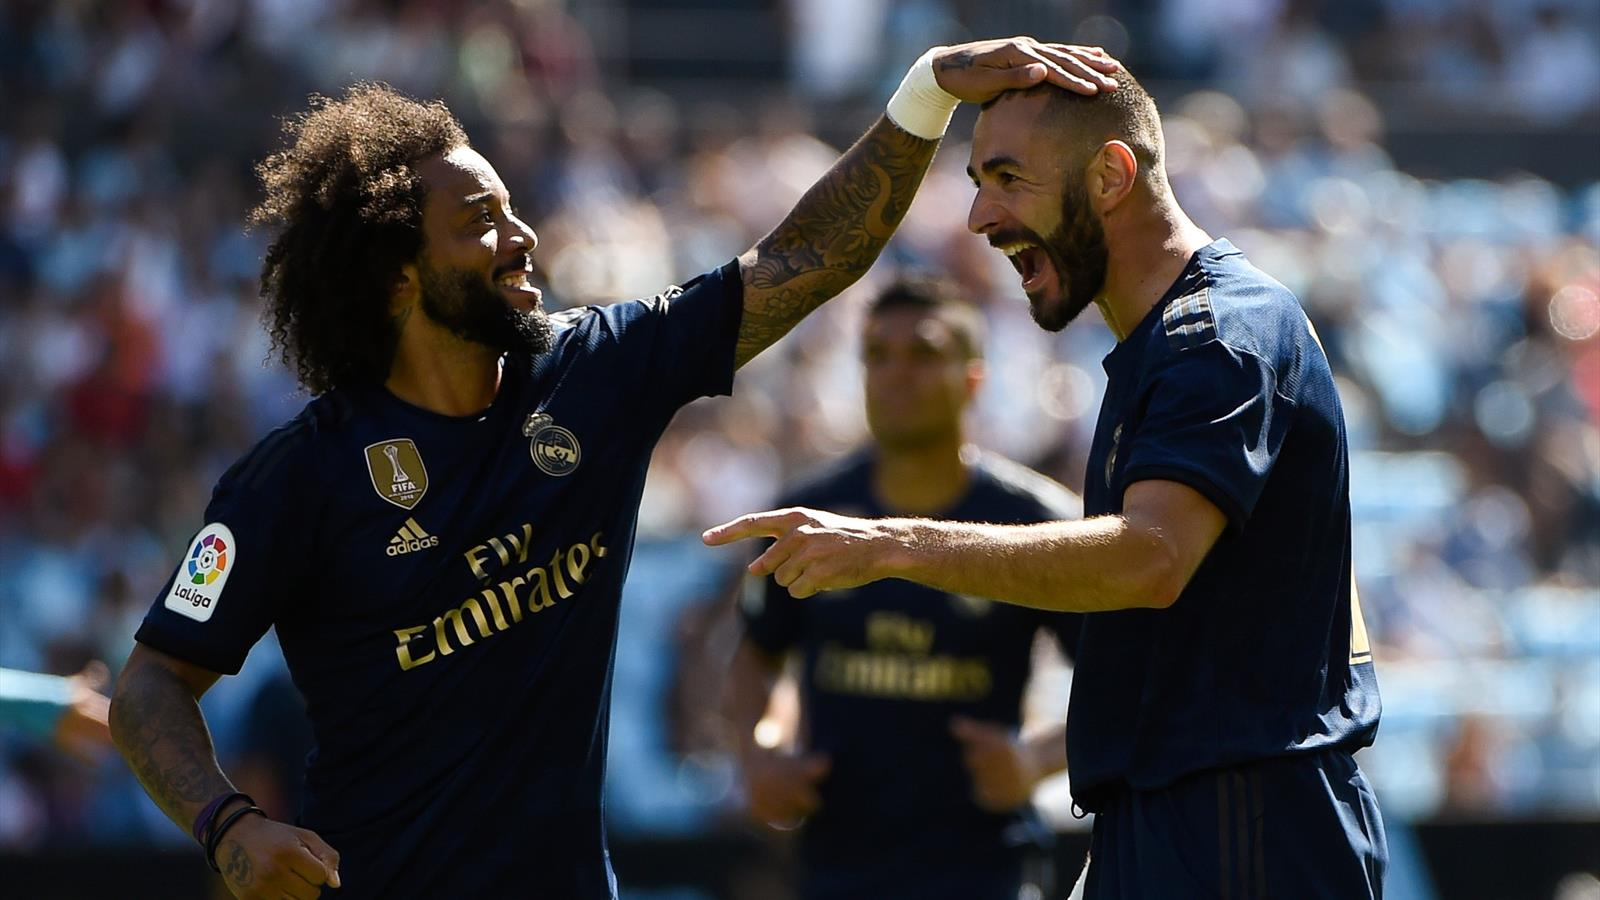 Football news - Karim Benzema on target as 10-man Real